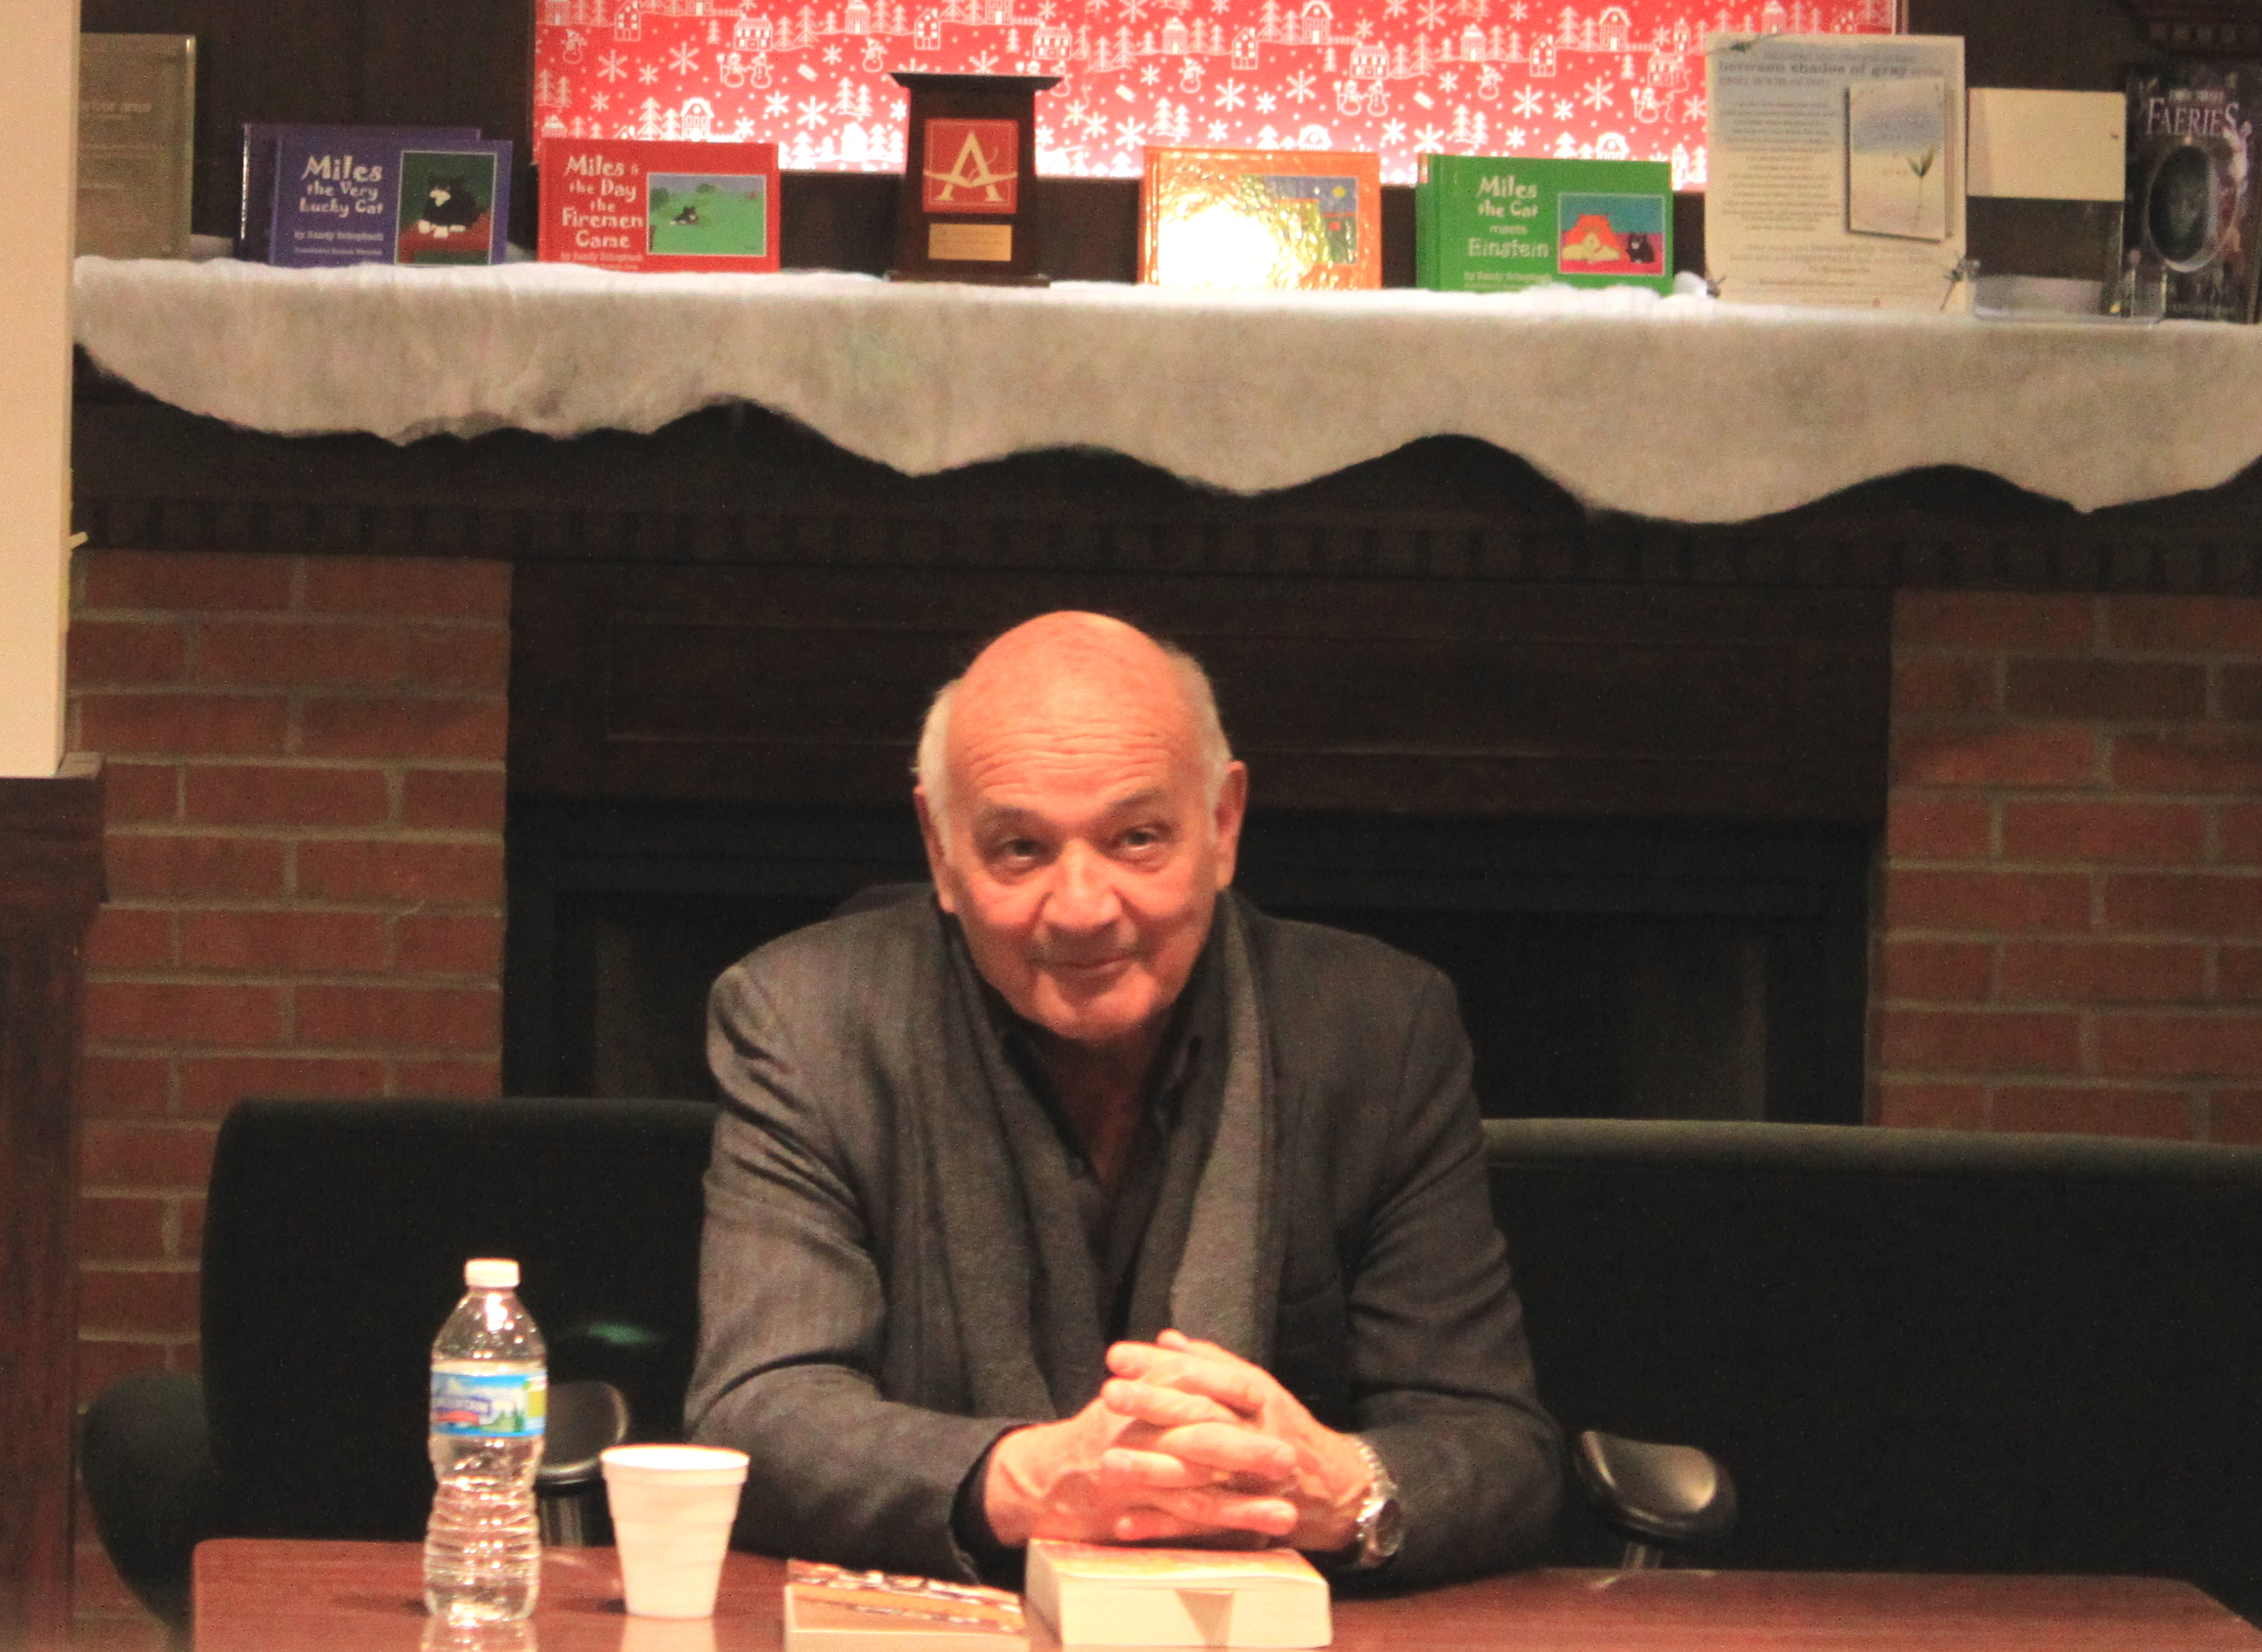 Delbanco at a book signing event, [[Ann Arbor, Michigan]], 15 February 2012